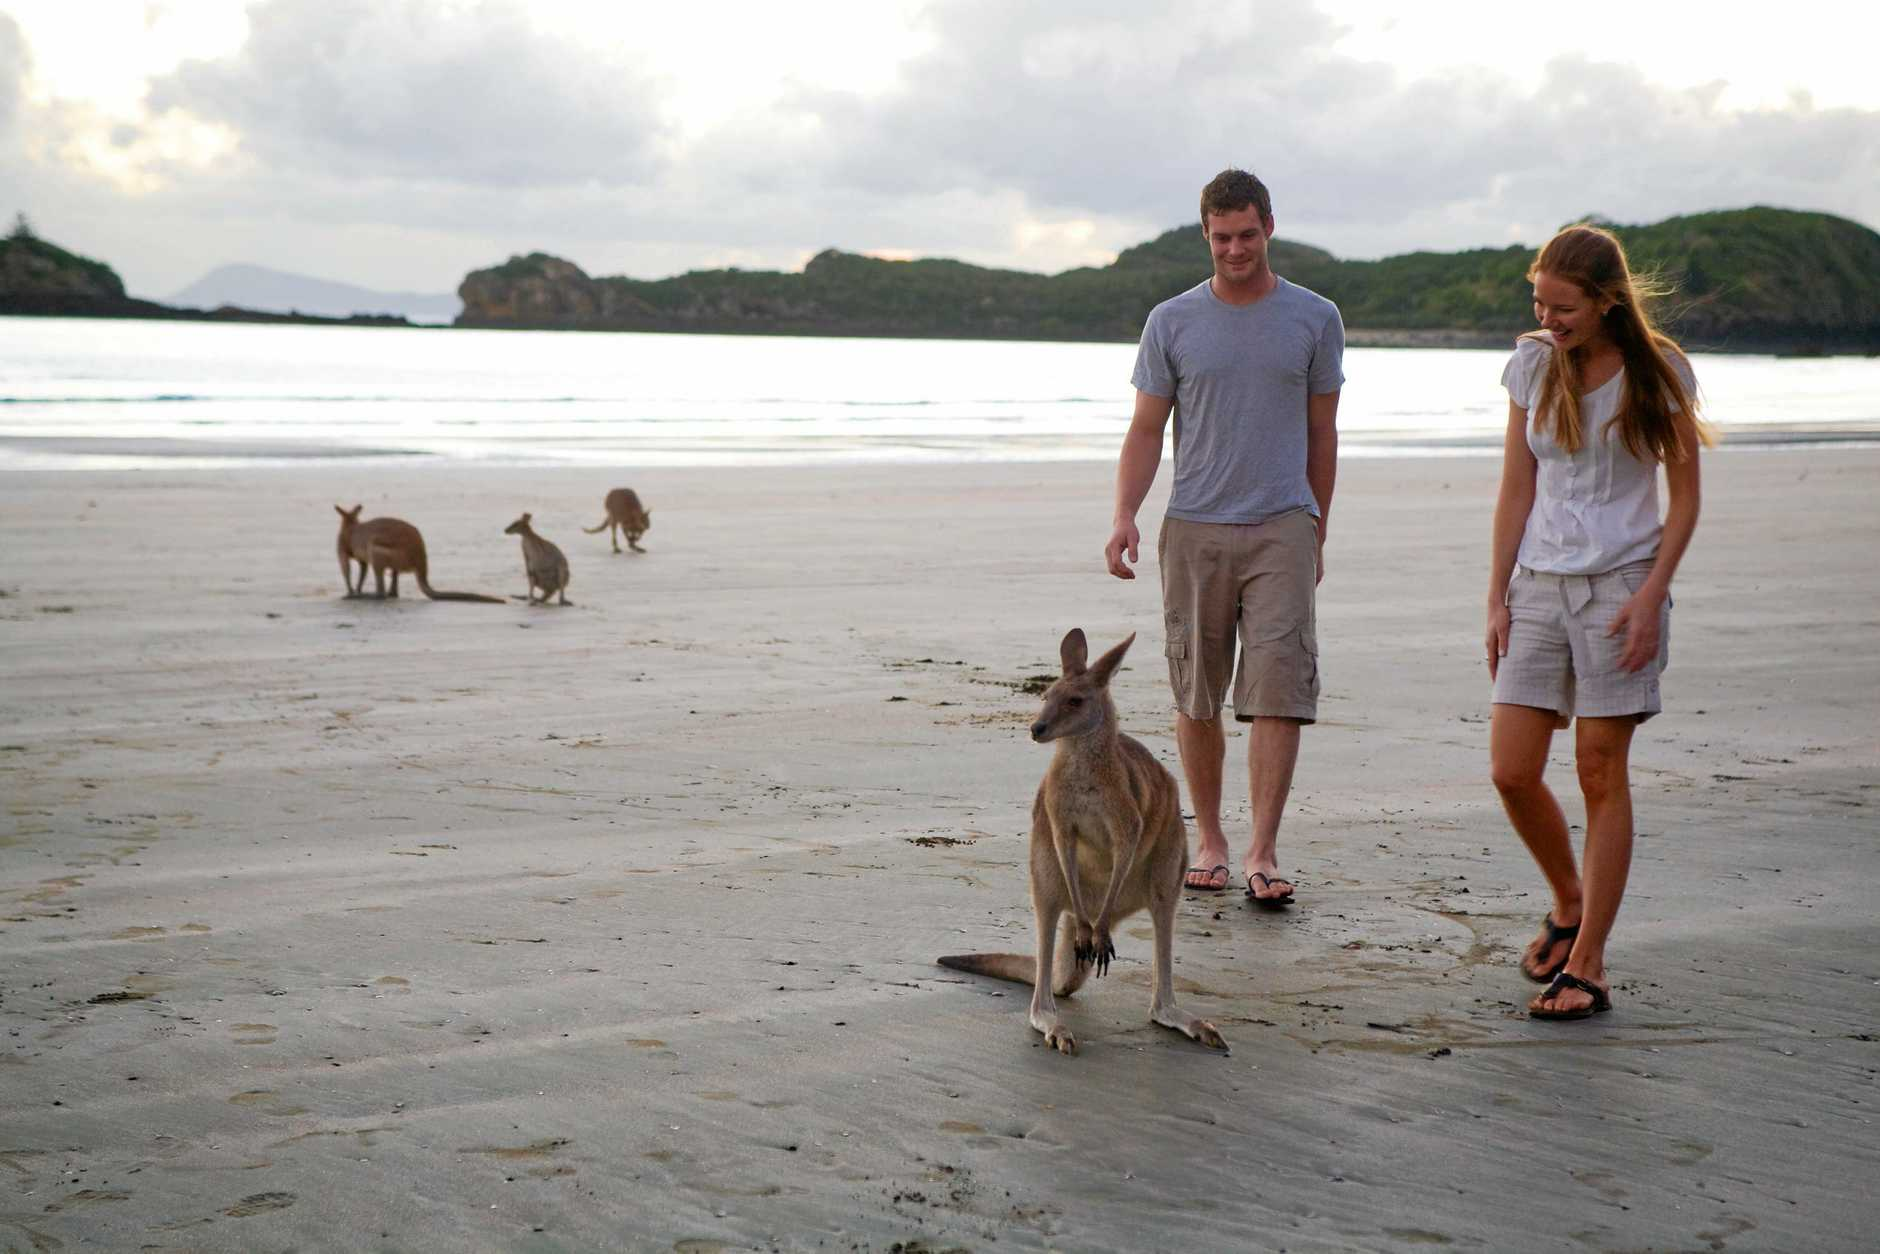 Cape Hillsborough National Park attracts tourists from all over the world.